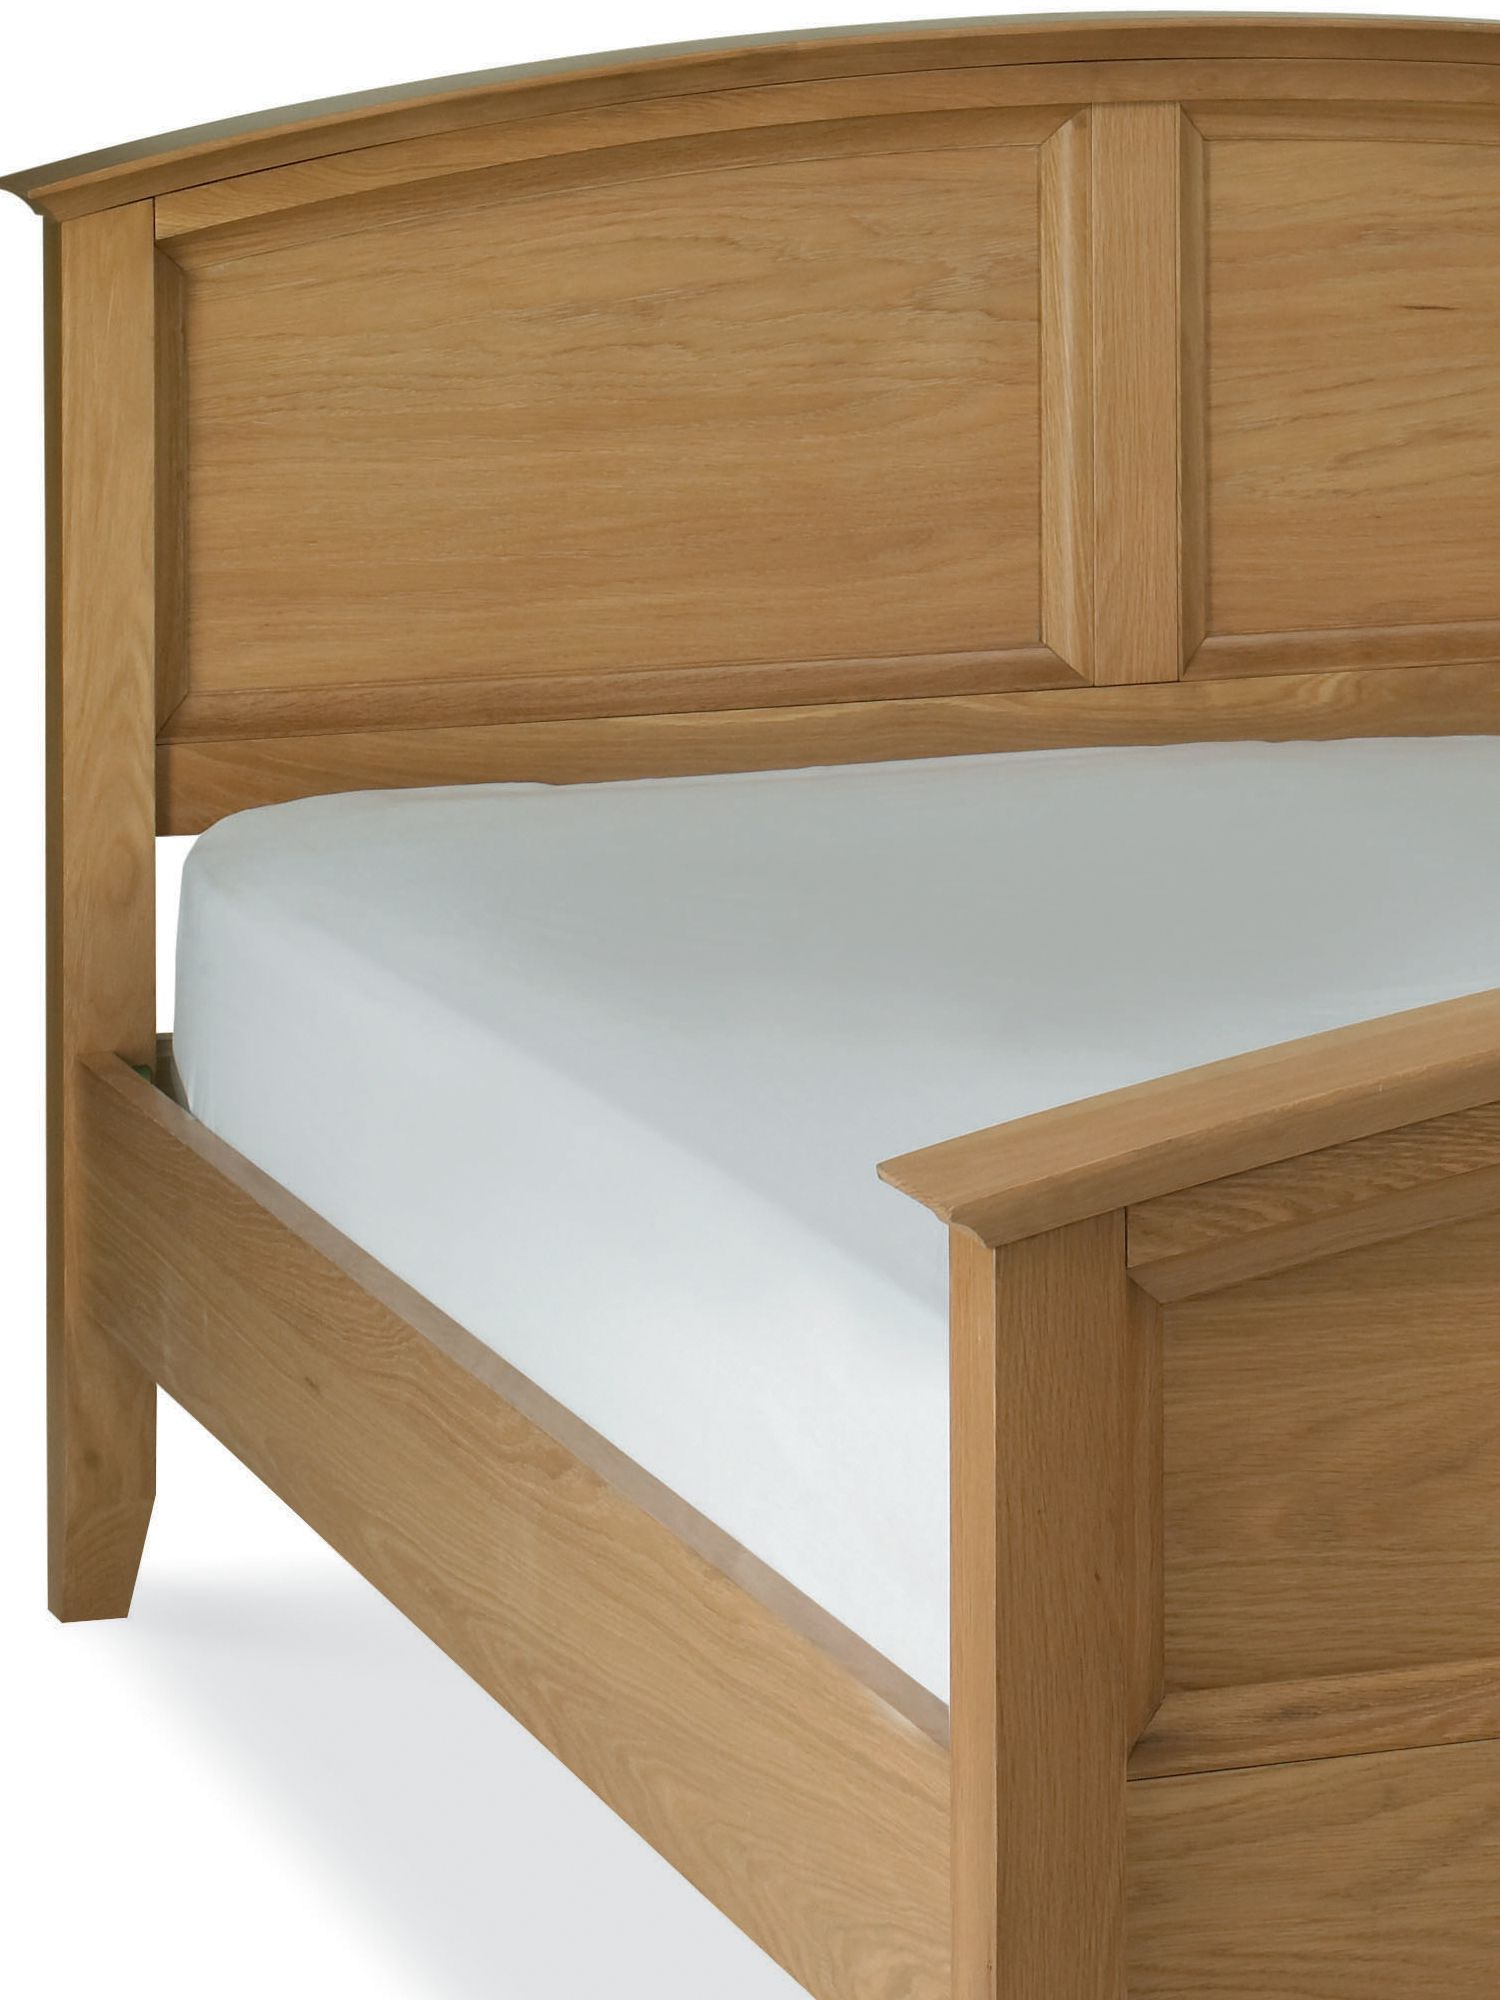 Lille double Bedstead